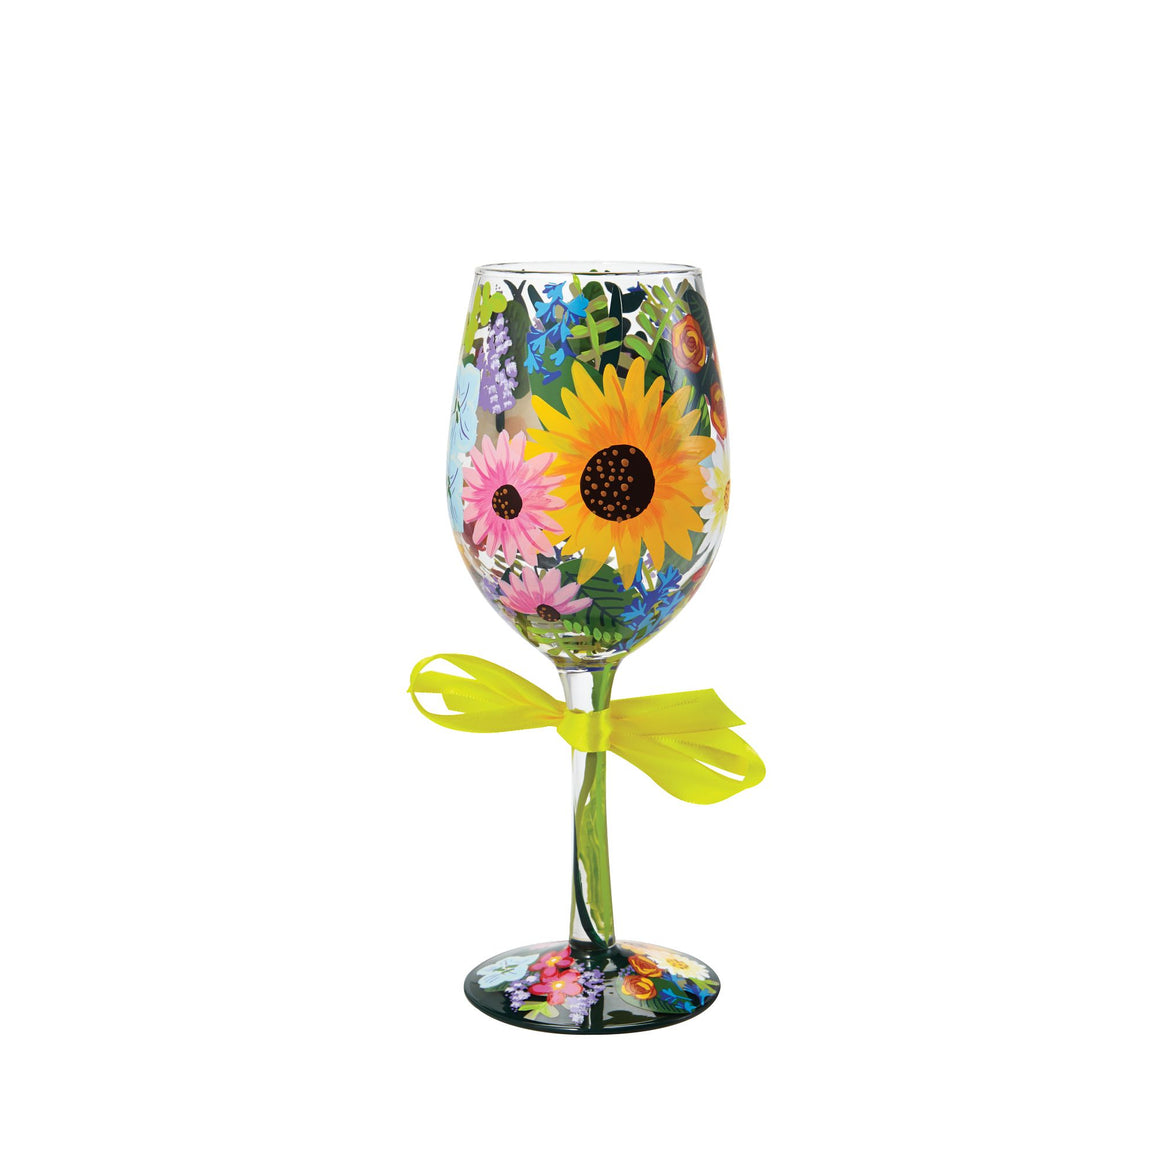 Wildflowers Wine Glass by Lolita